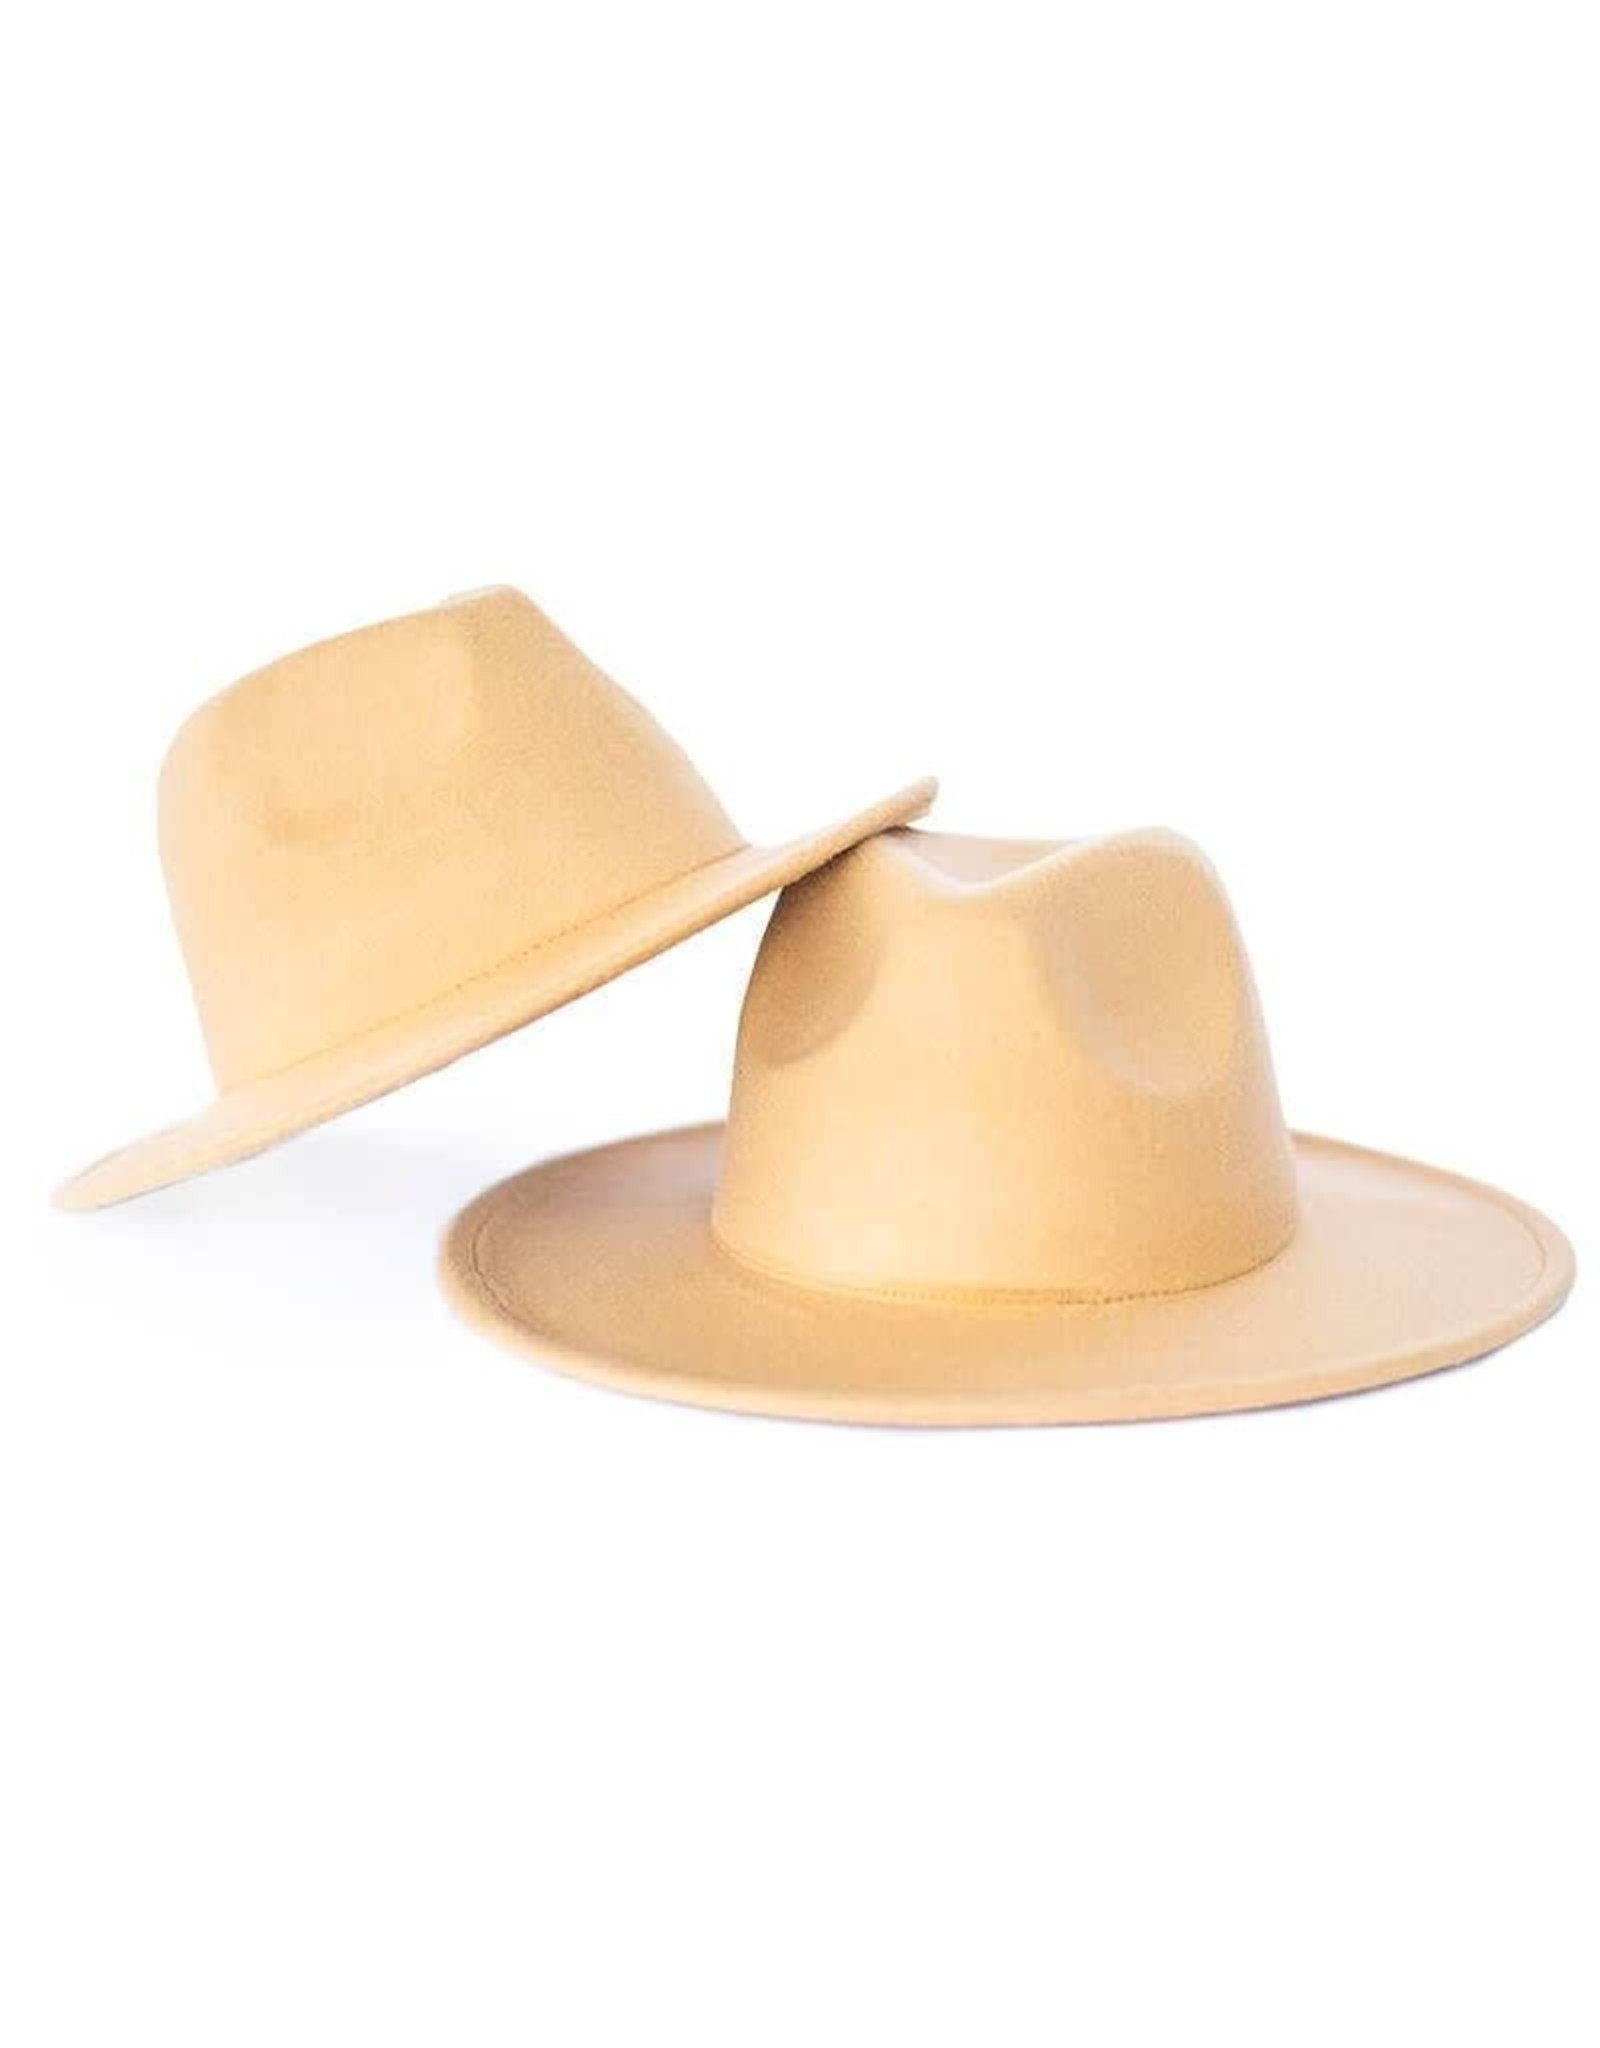 Bailey's Blossoms Adult Bordeaux Brim Hat-Camel